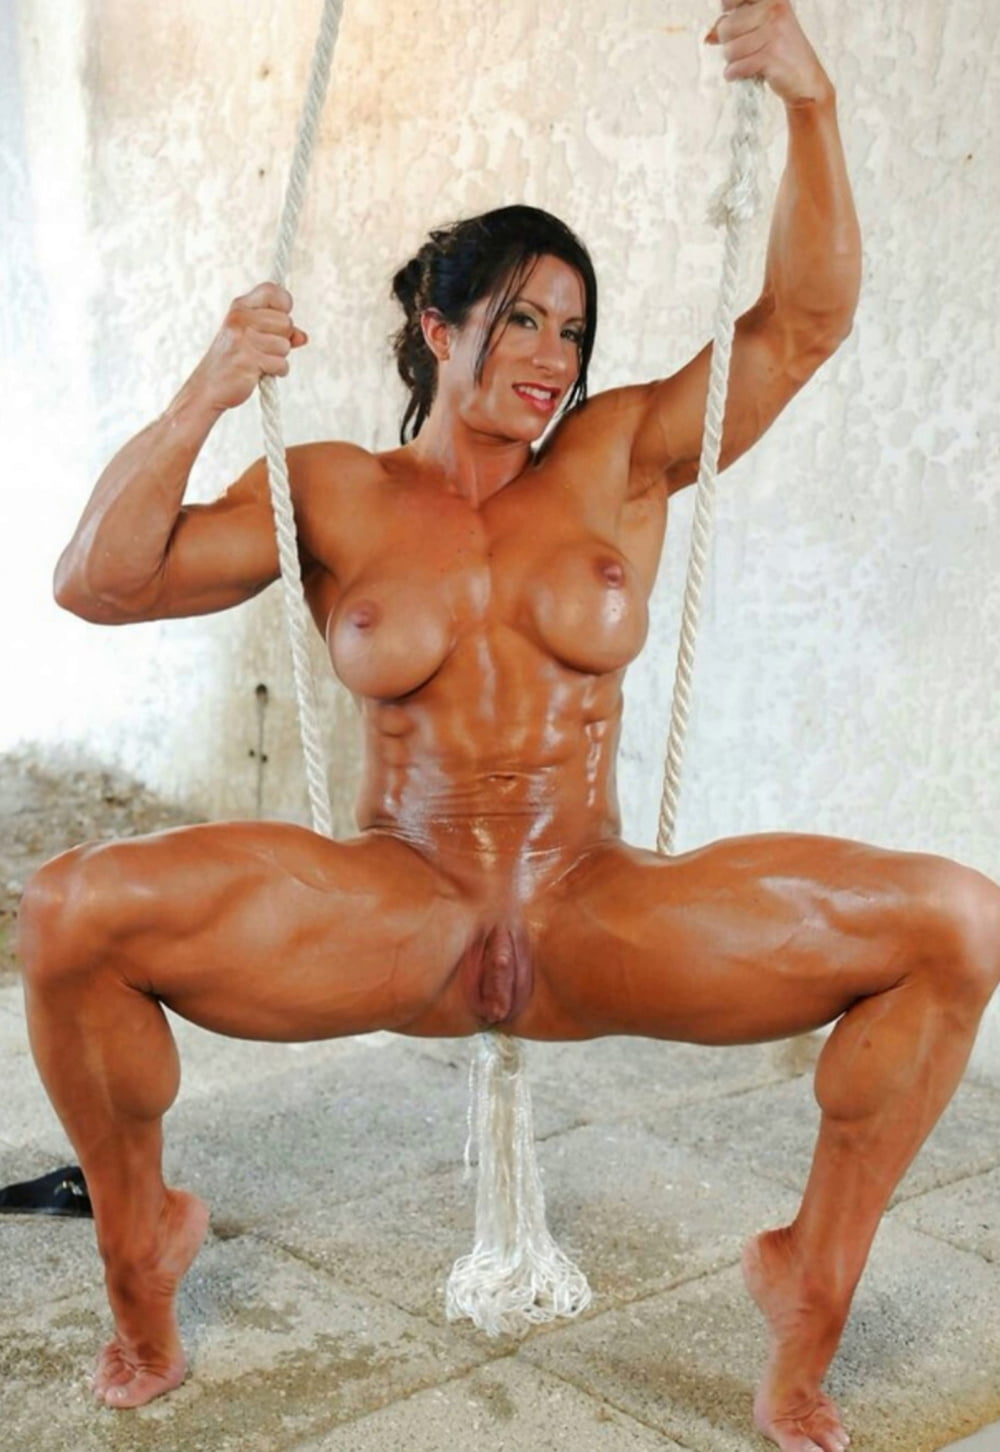 Pussy muscle control pics